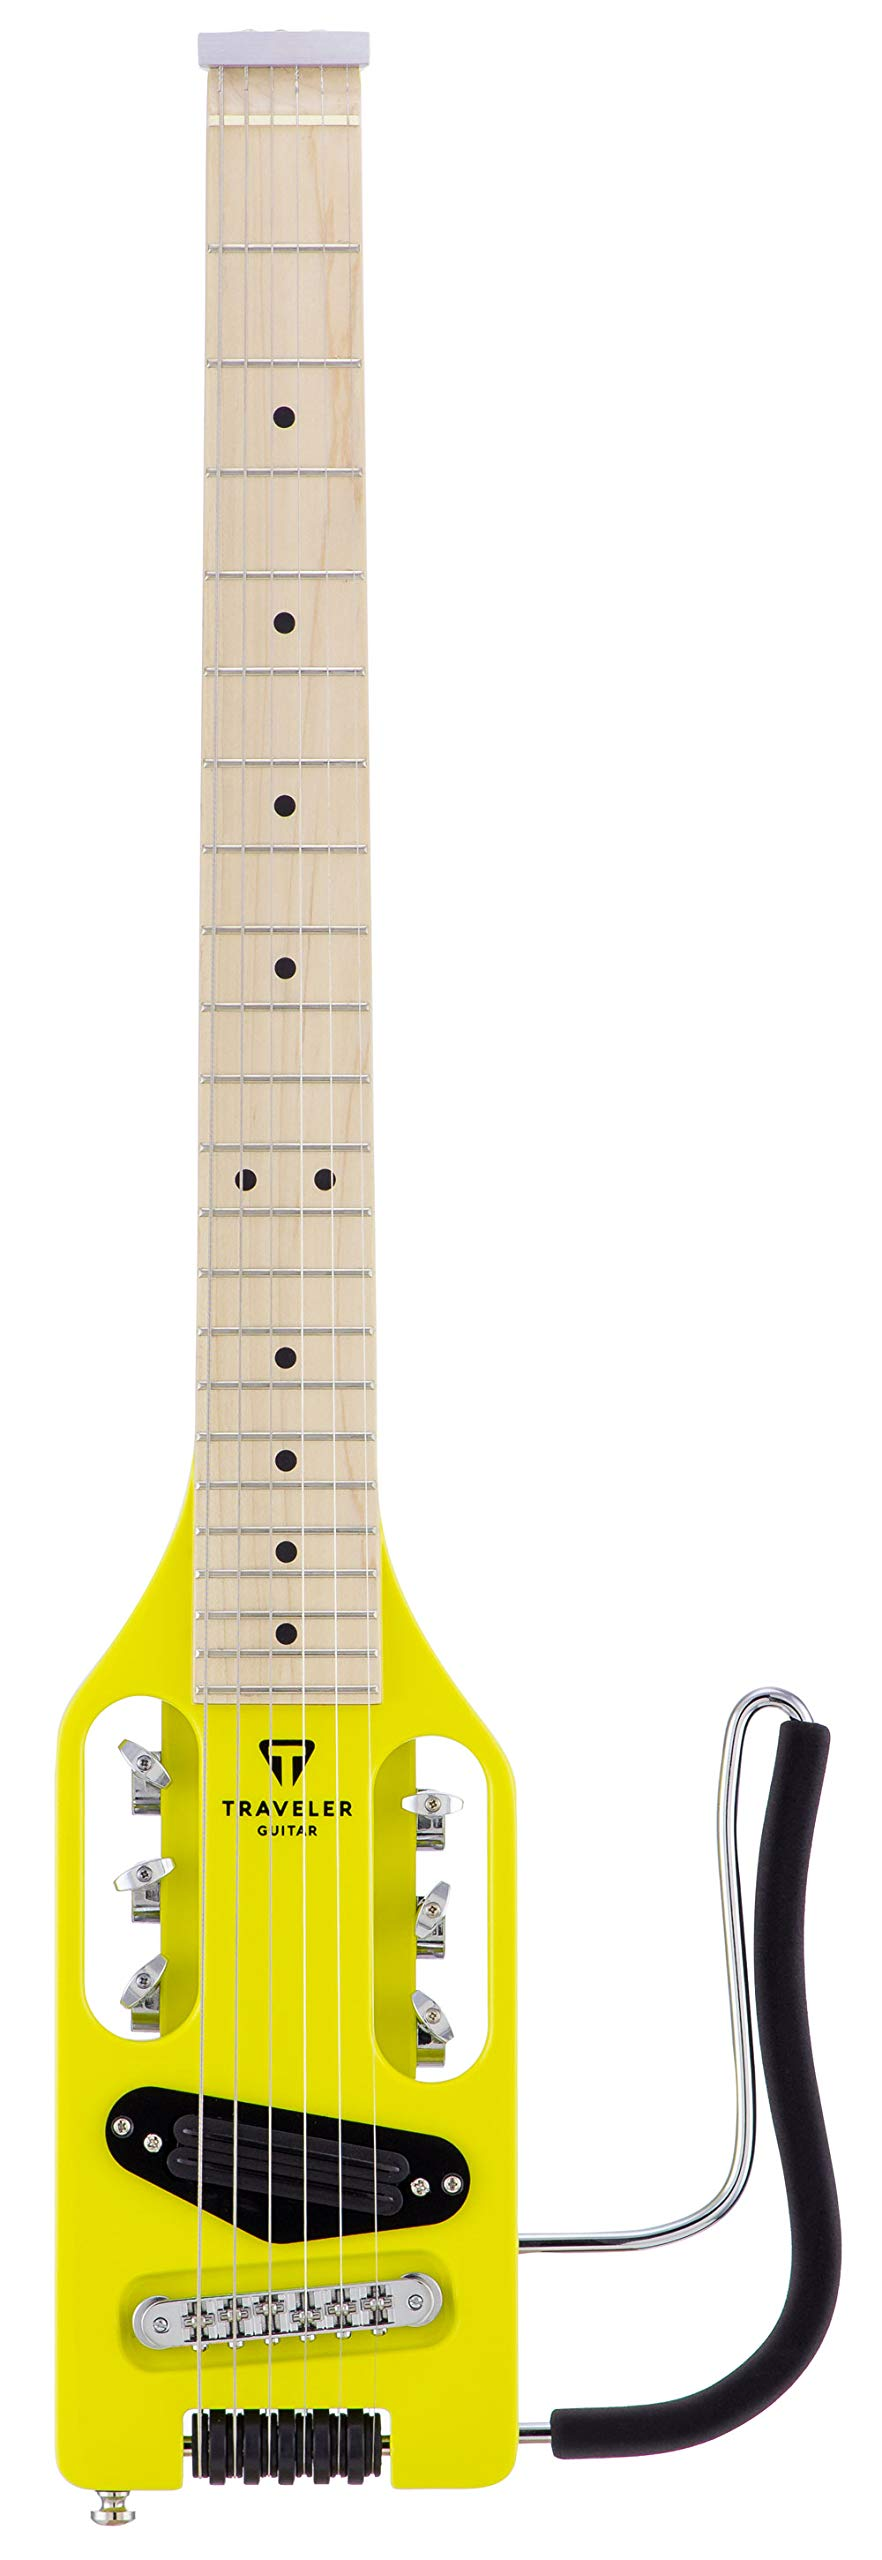 Cheap Ultra-Light Electric Travel Guitar w/Gig Bag (Electric Yellow) Black Friday & Cyber Monday 2019